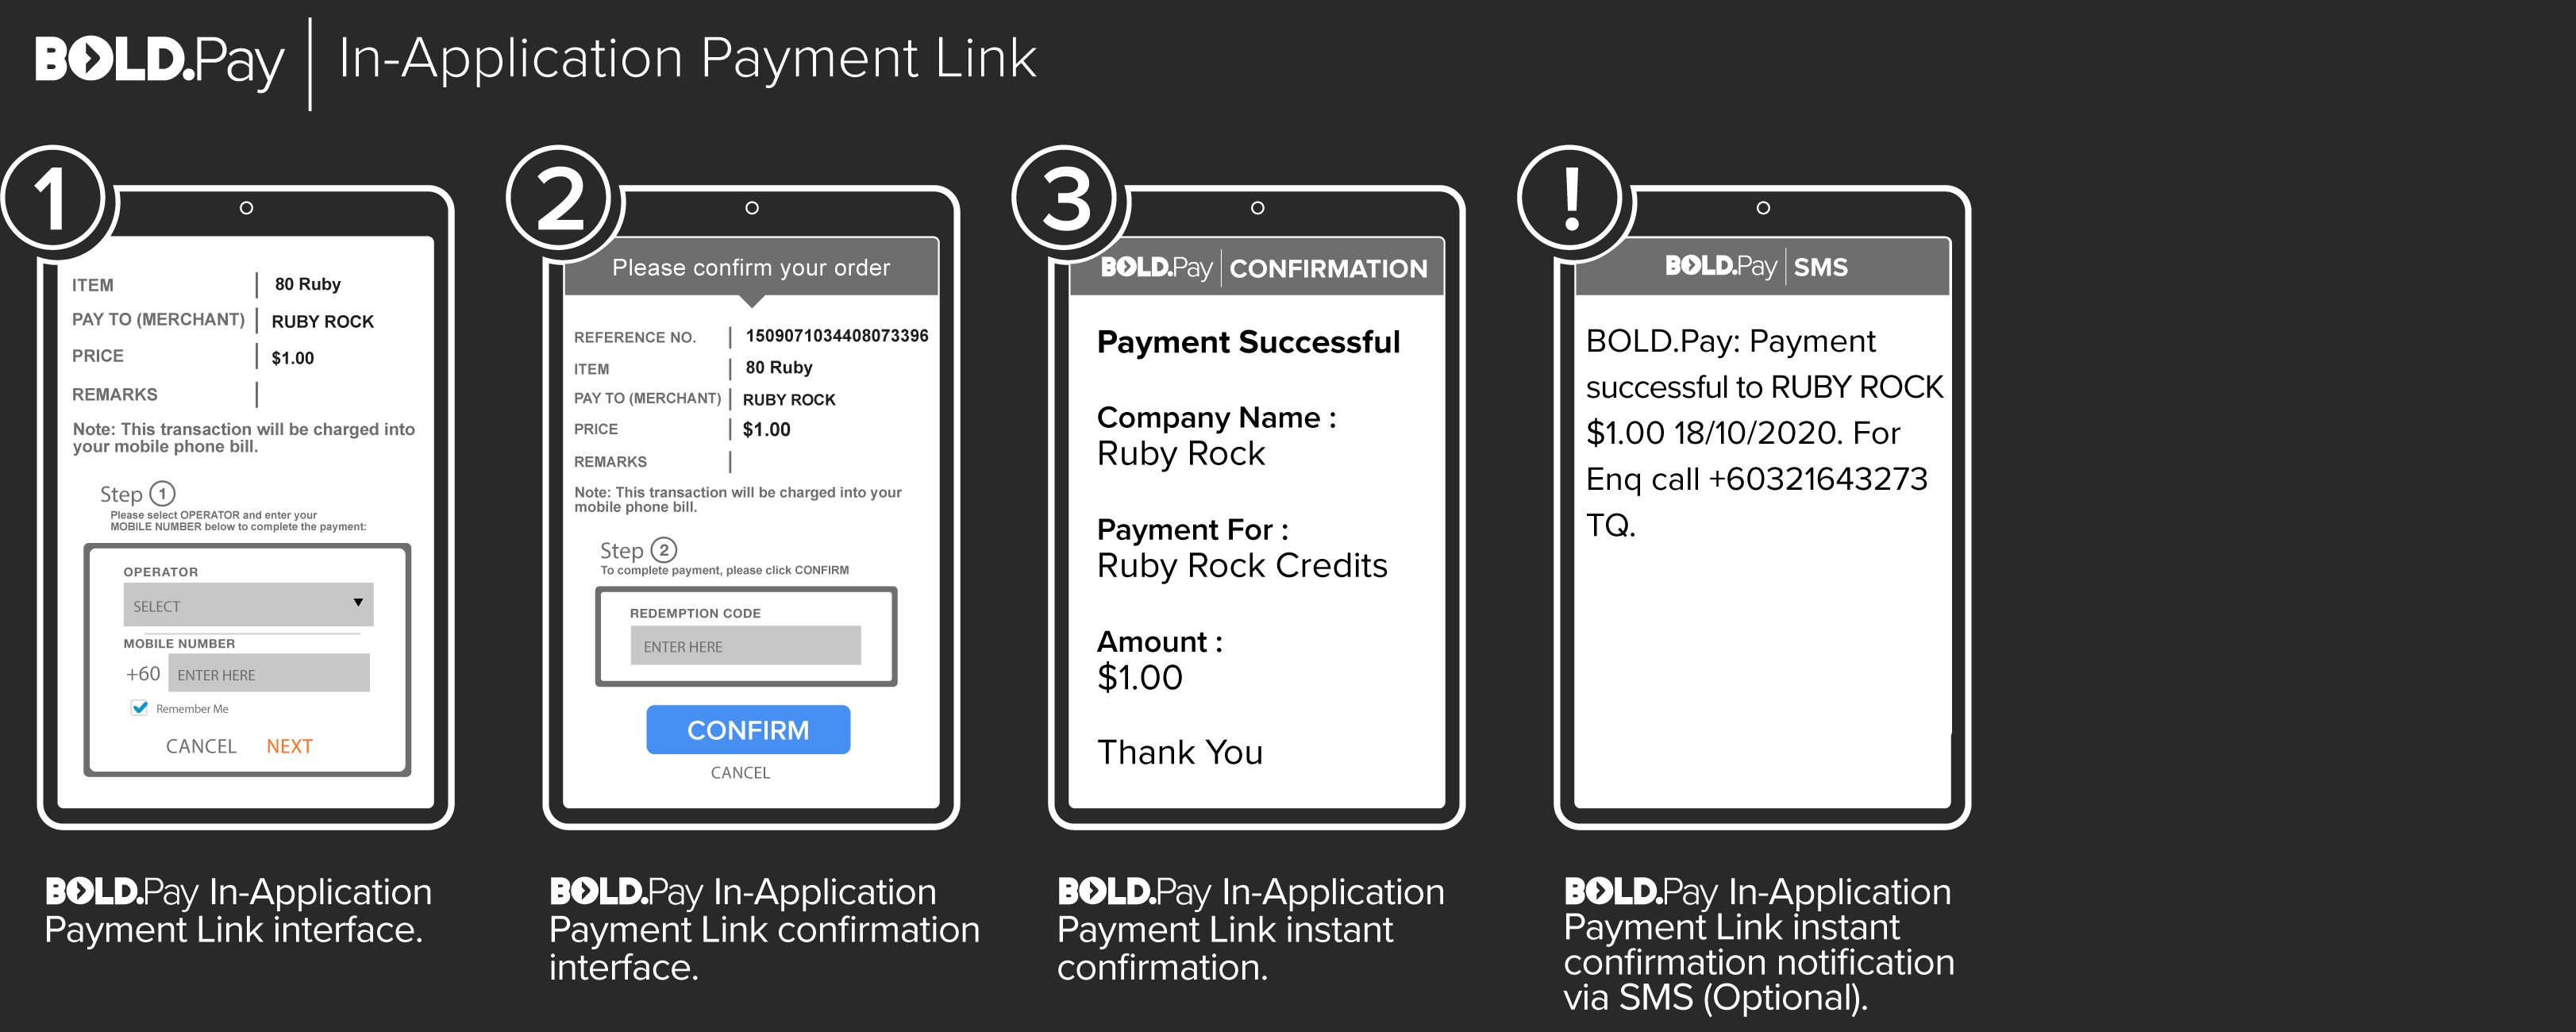 Bold.Pay in-apllication Payment Link